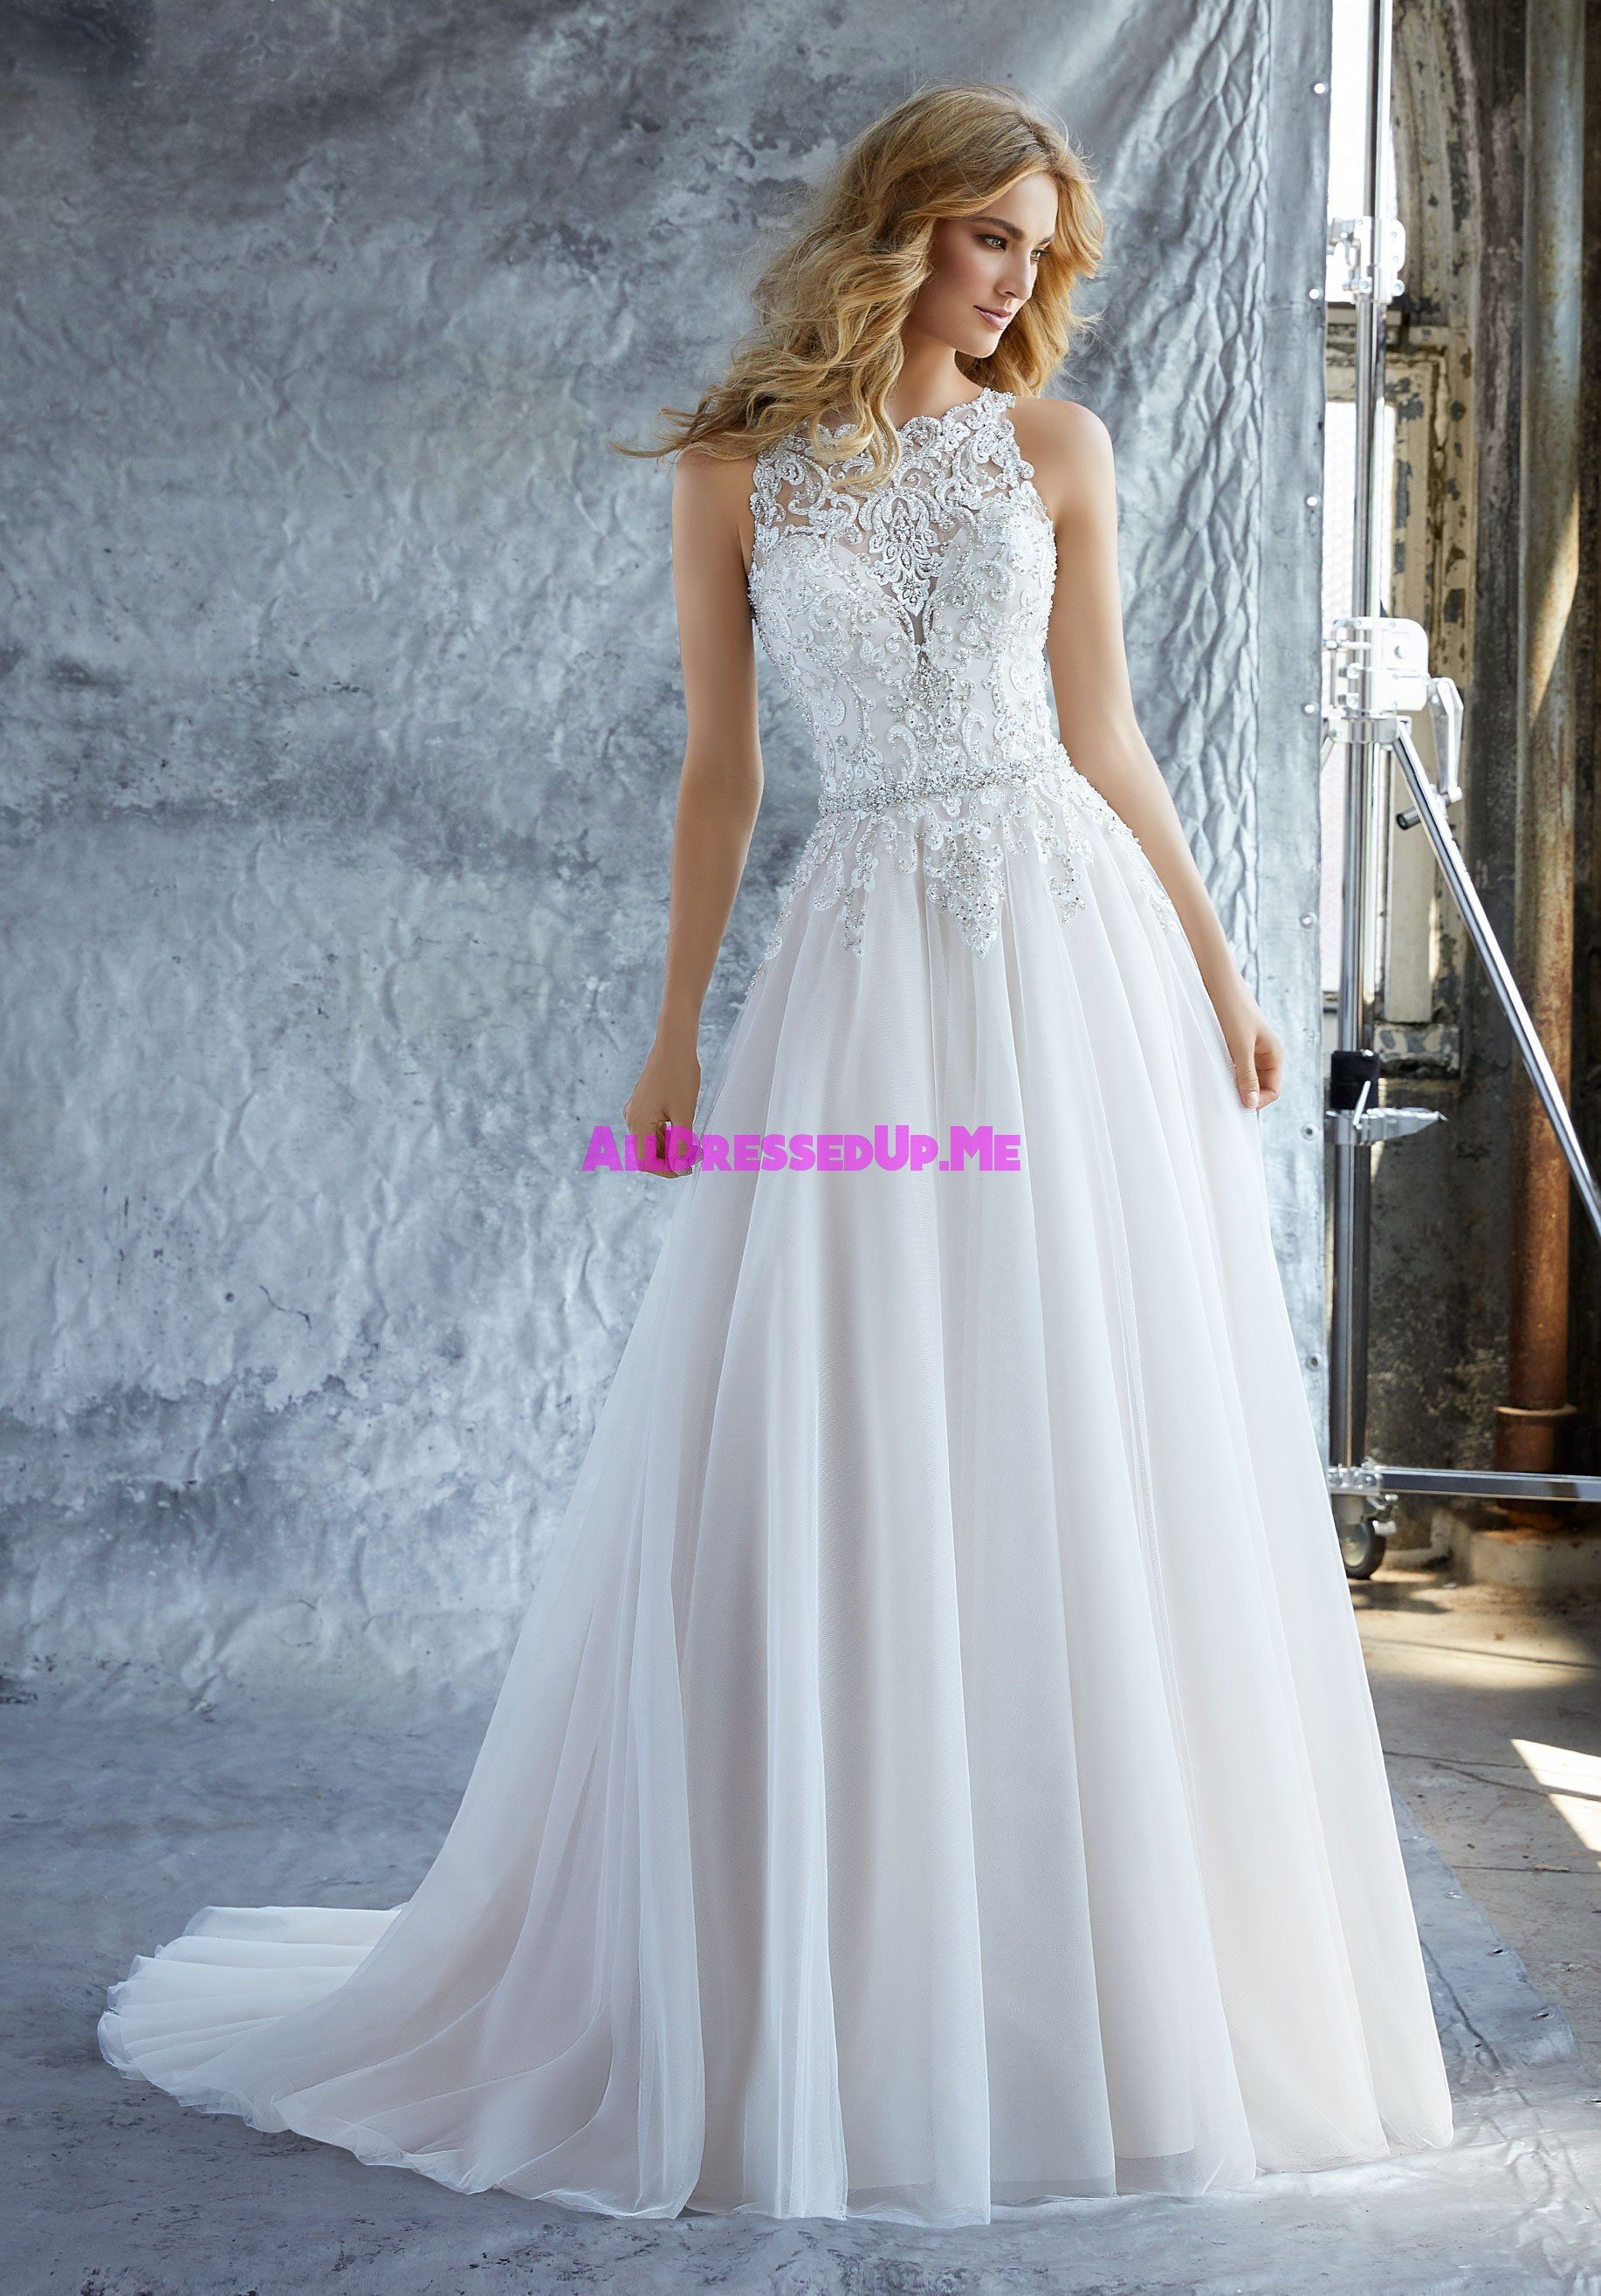 Morilee - 8213 - Katie - All Dressed Up, Bridal Gown | Bridal gowns ...